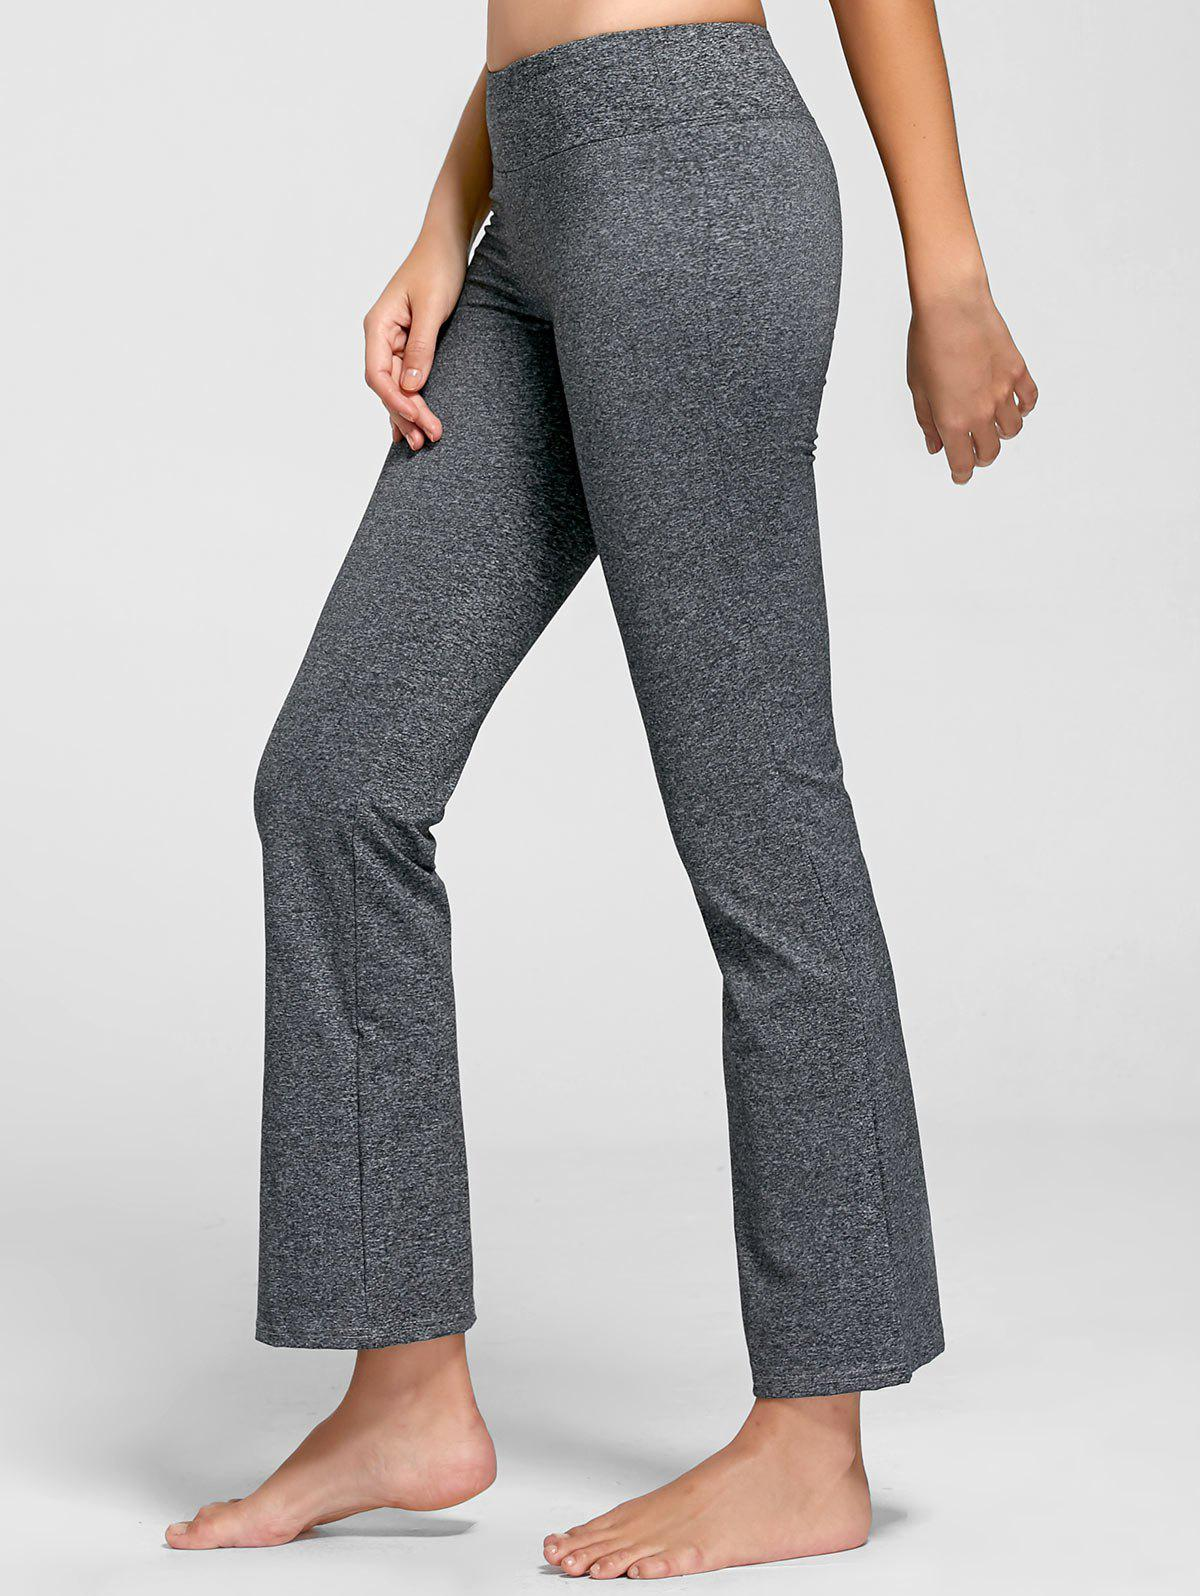 Marled Bell Bottom Yoga Pants - GRAY L